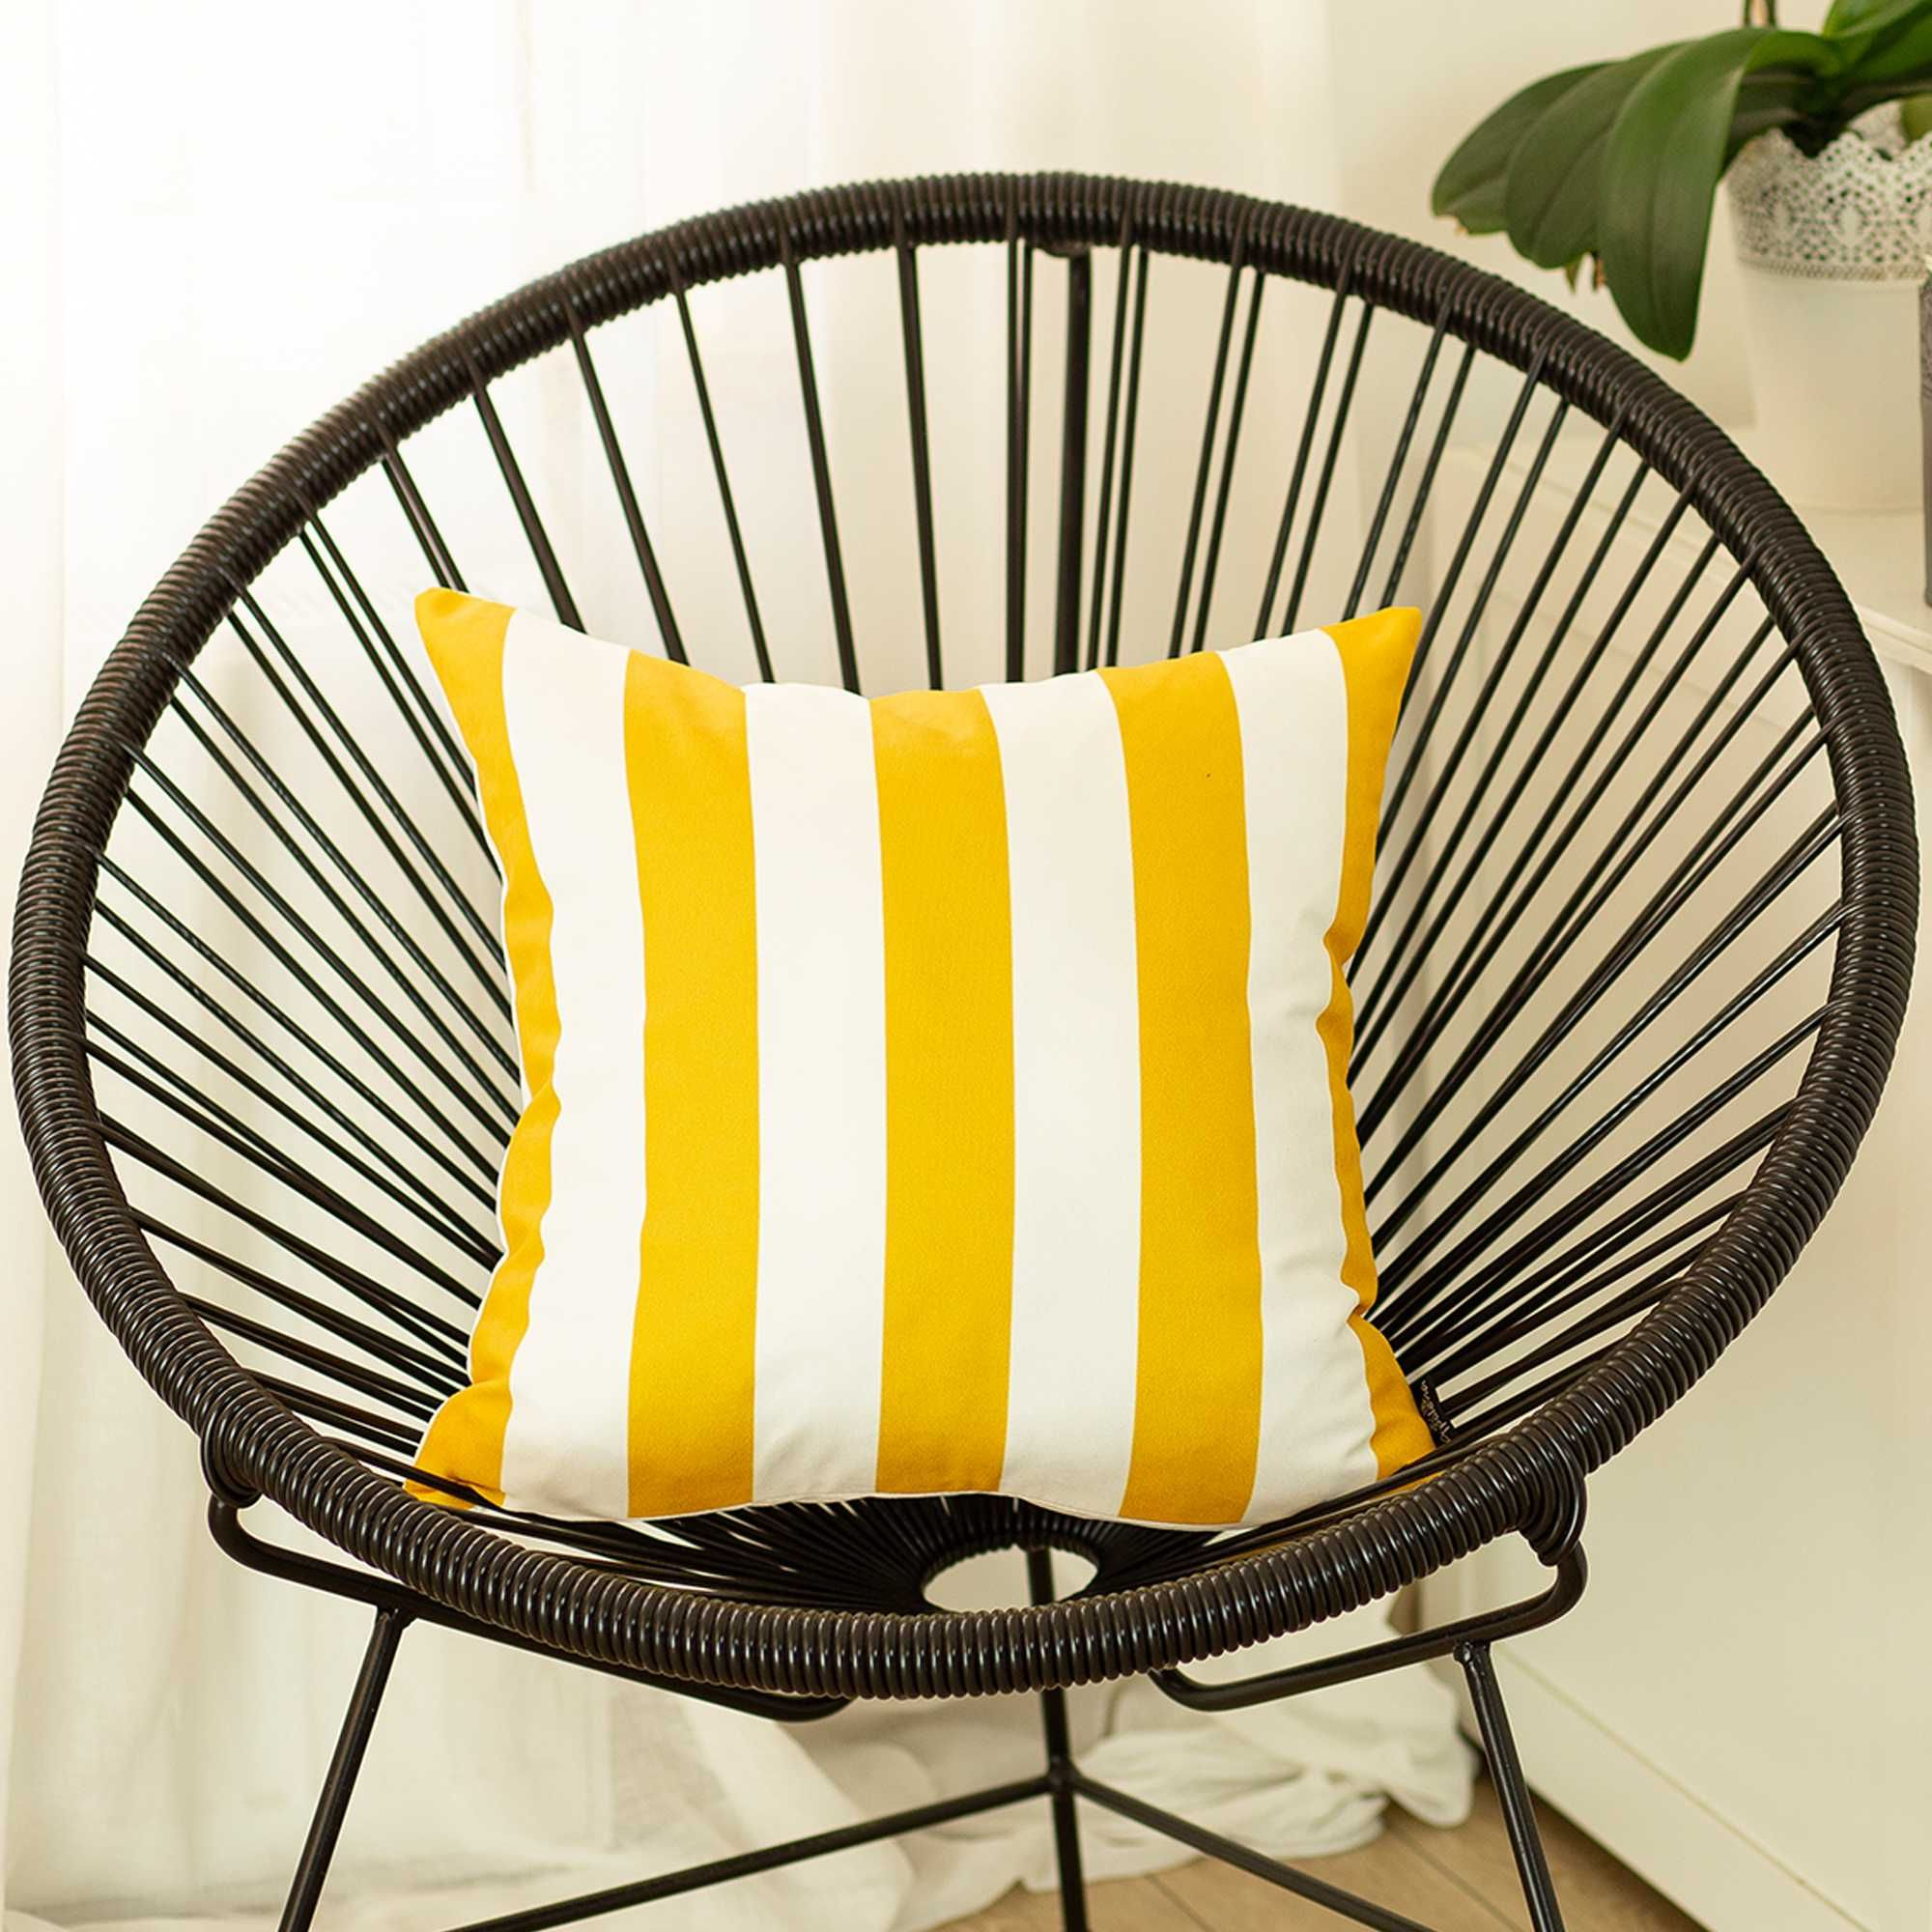 Pillow Covers - 18x18 Yellow Stripes Geometric Decorative Throw Pillow Cover - Multi / Polyester